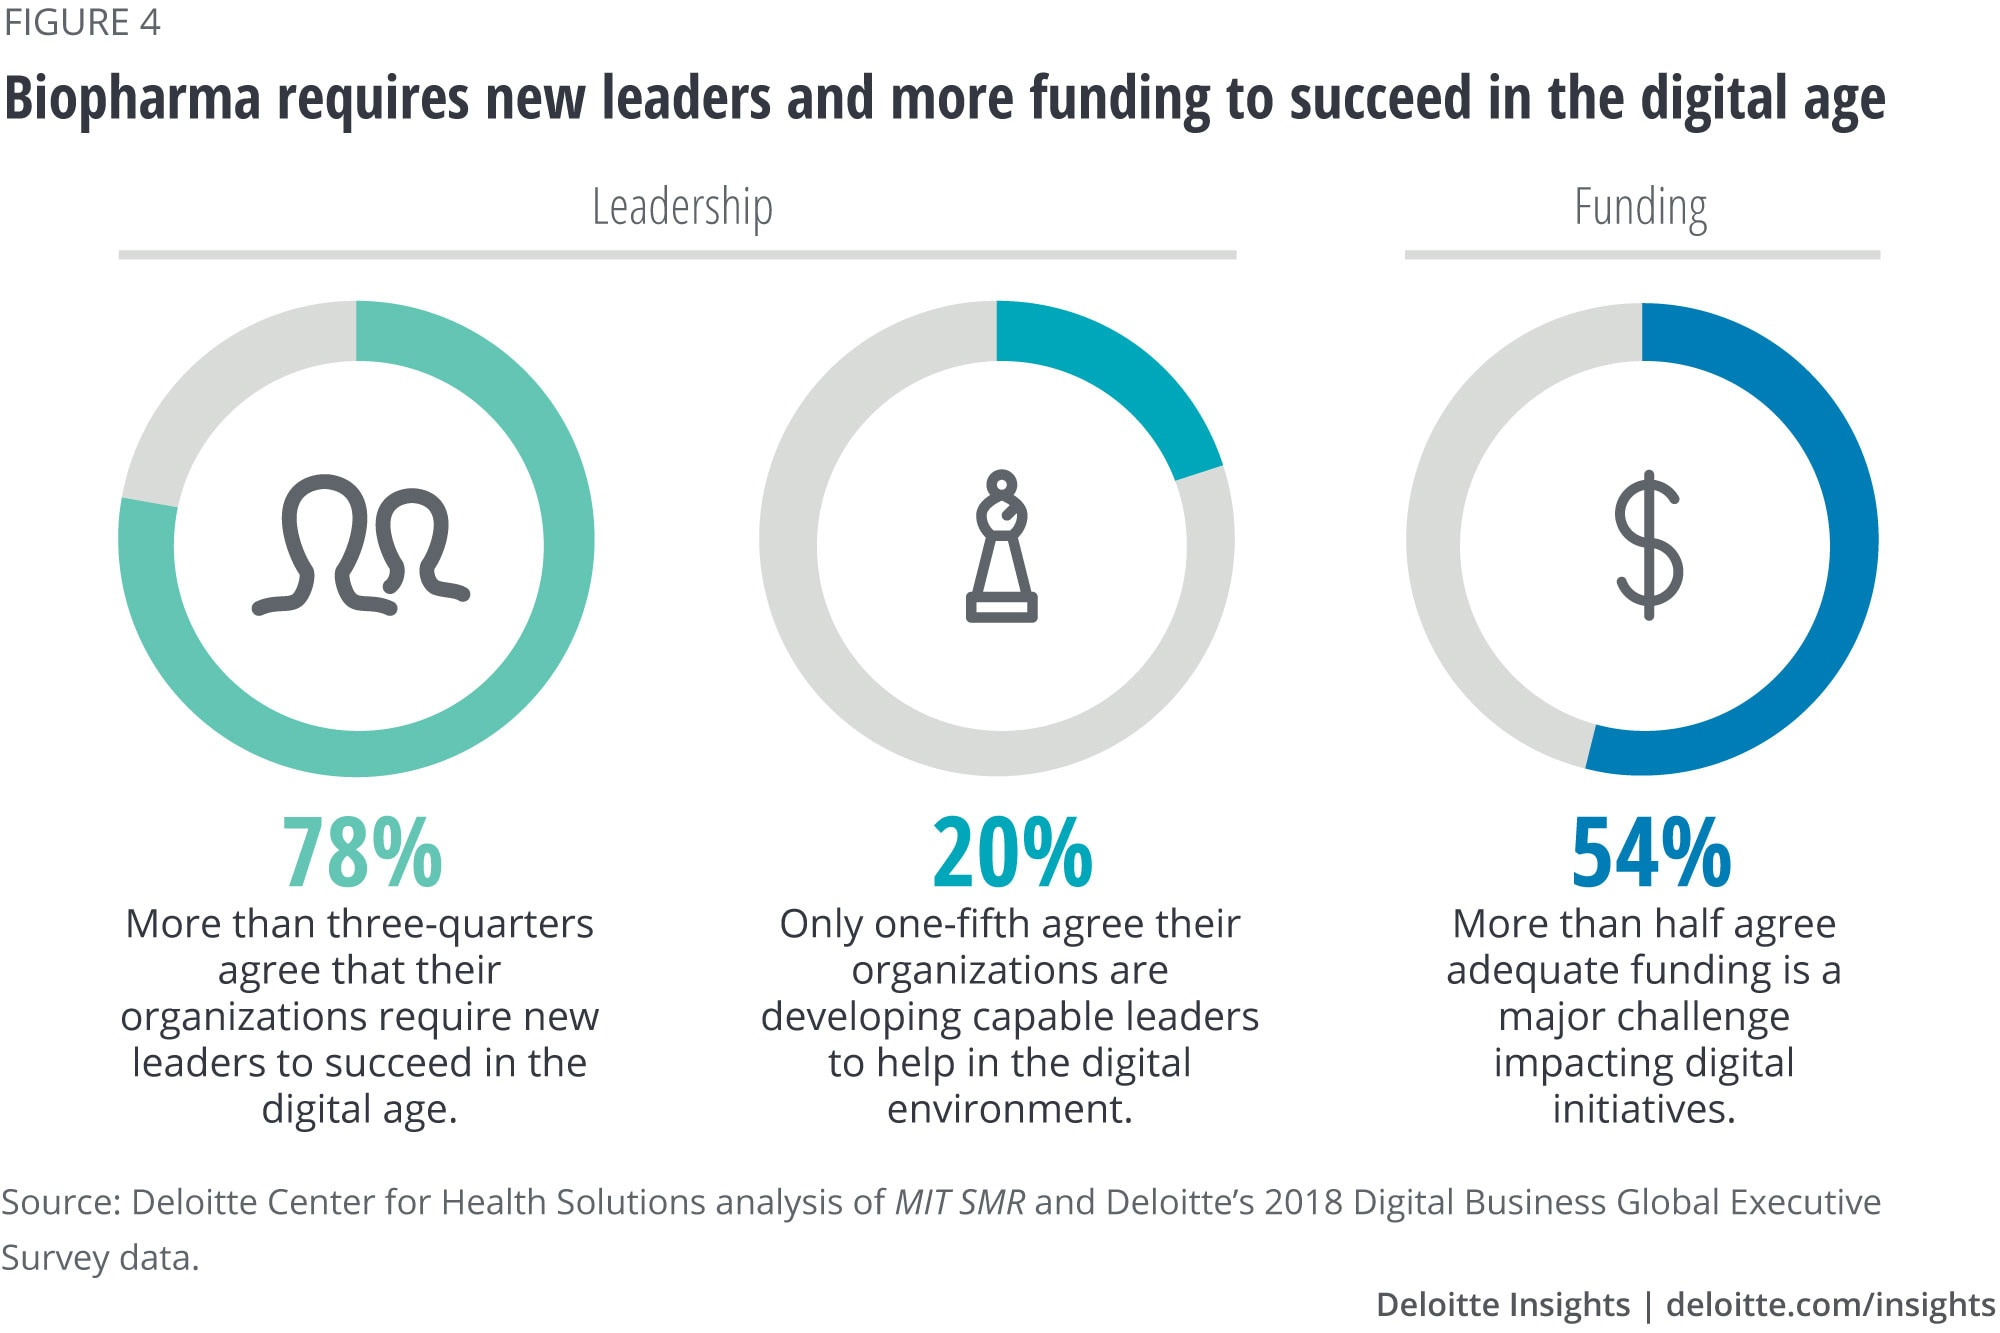 Biopharma requires new leaders and more funding to succeed in the digital age